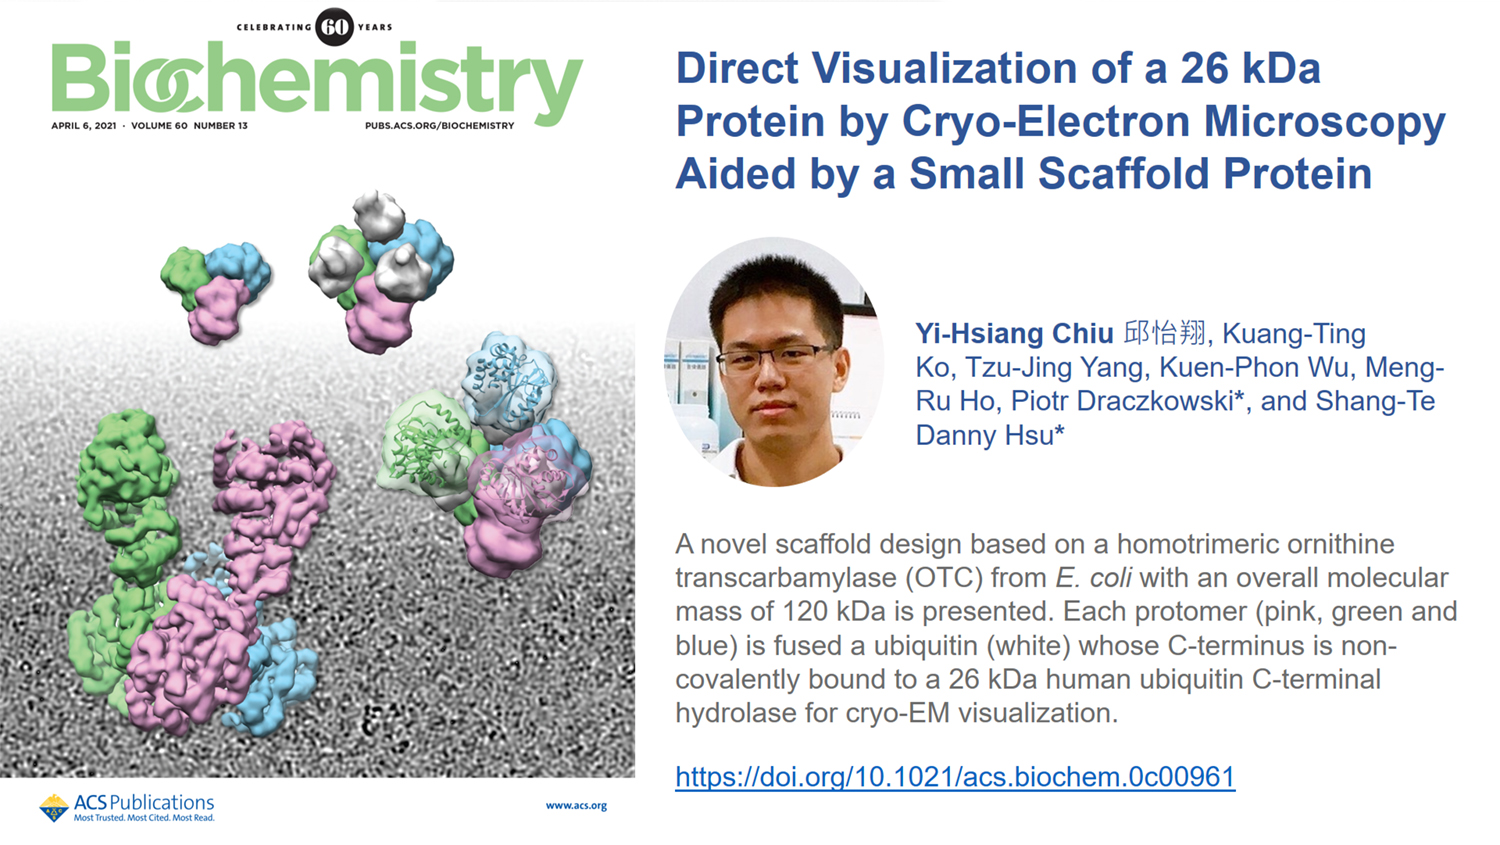 Direct Visualization of a 26 kDa Protein by Cryo-Electron Microscopy Aided by a Small Scaffold Protein